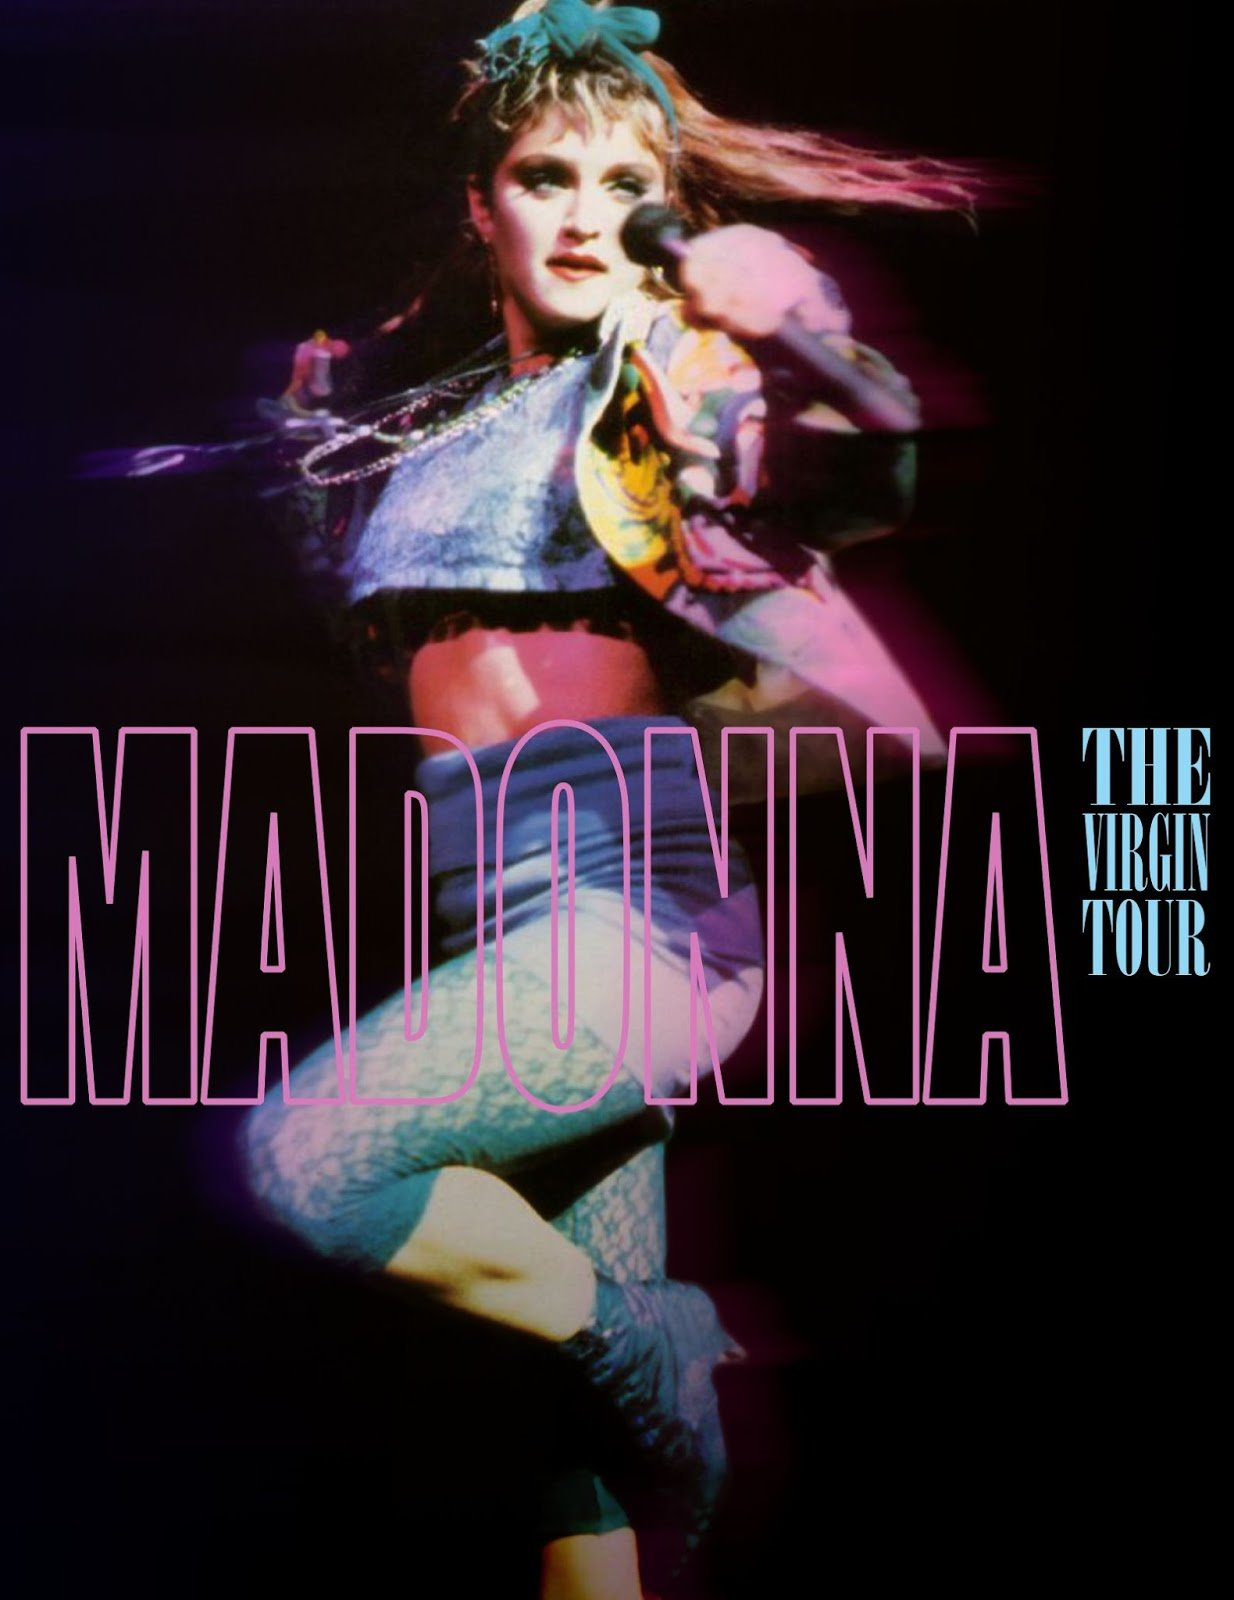 The Virgin Tour Dvd 18